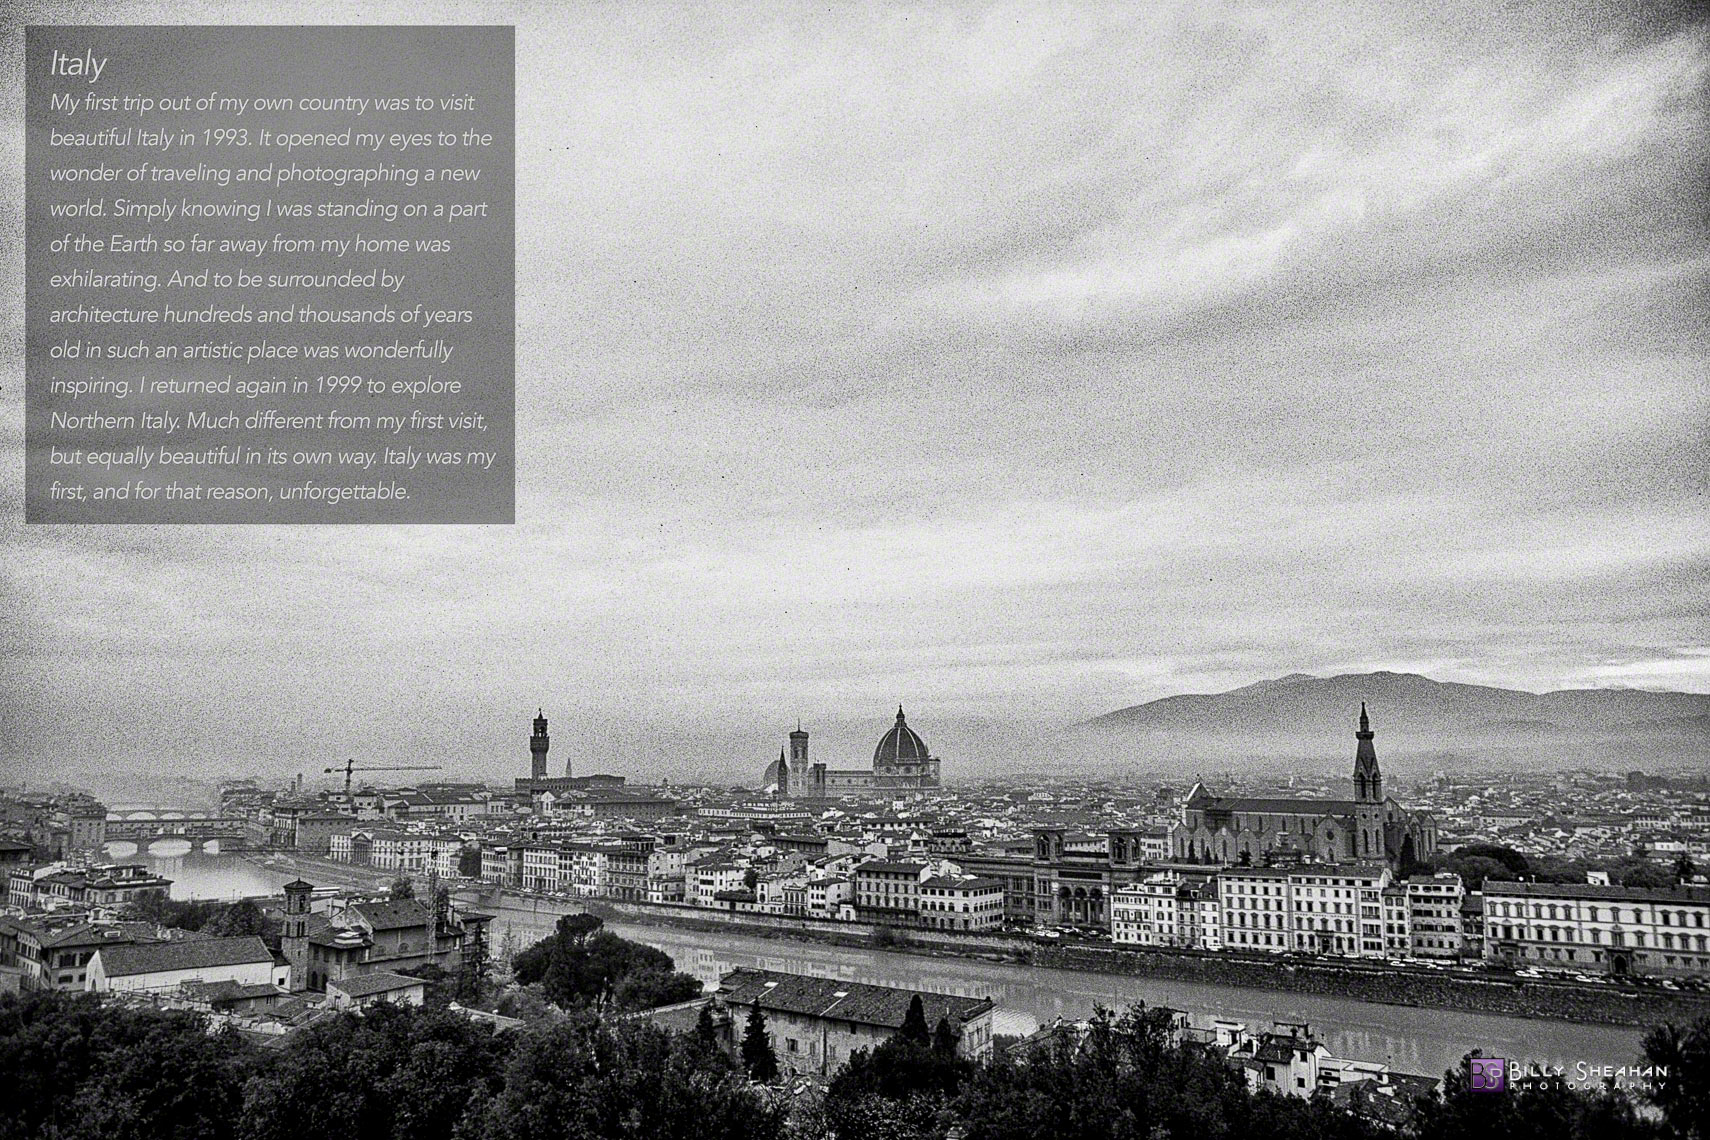 Florence__Italy_from_Michelangelo_Park_Italy-134_25_BW_T_D